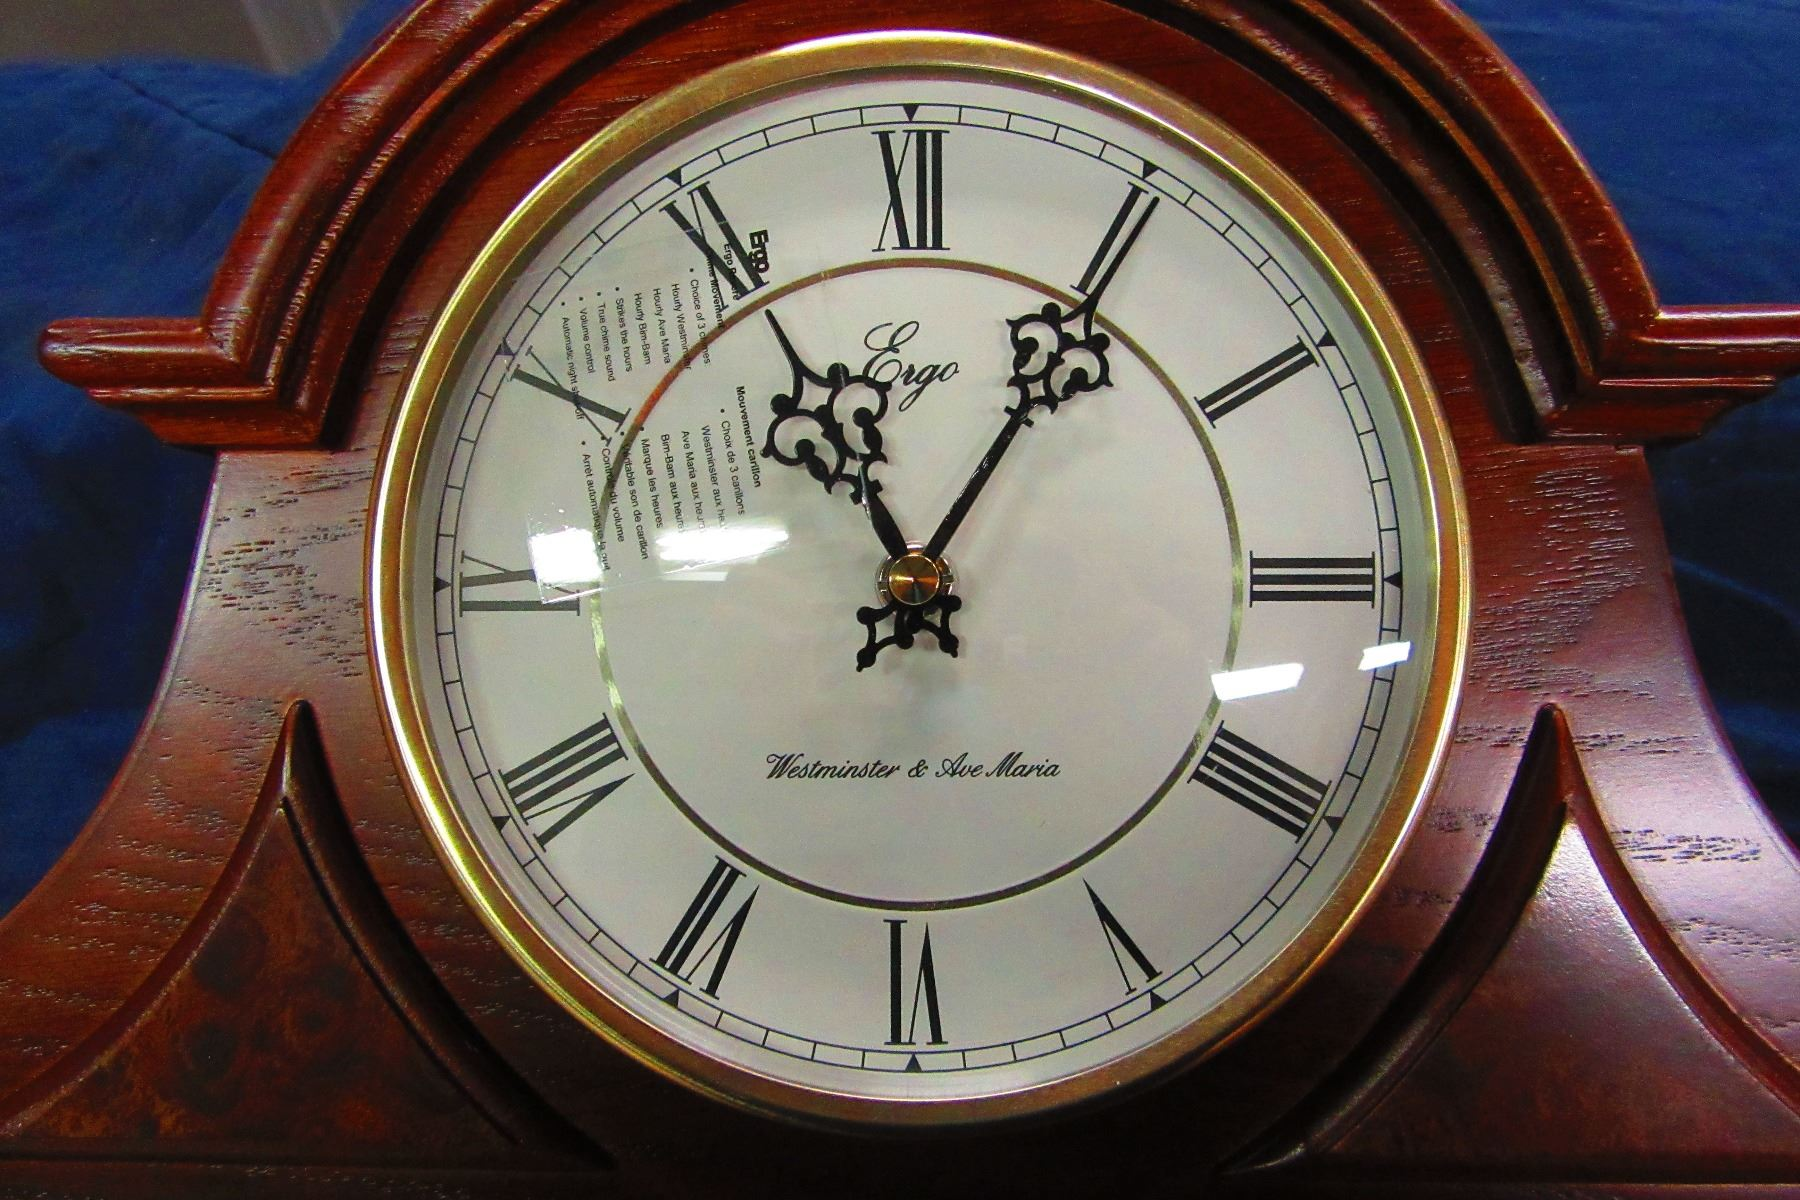 Image 2 New Ergo Wood Framed Mantle Clock With Westminster Ava Maria Chimes